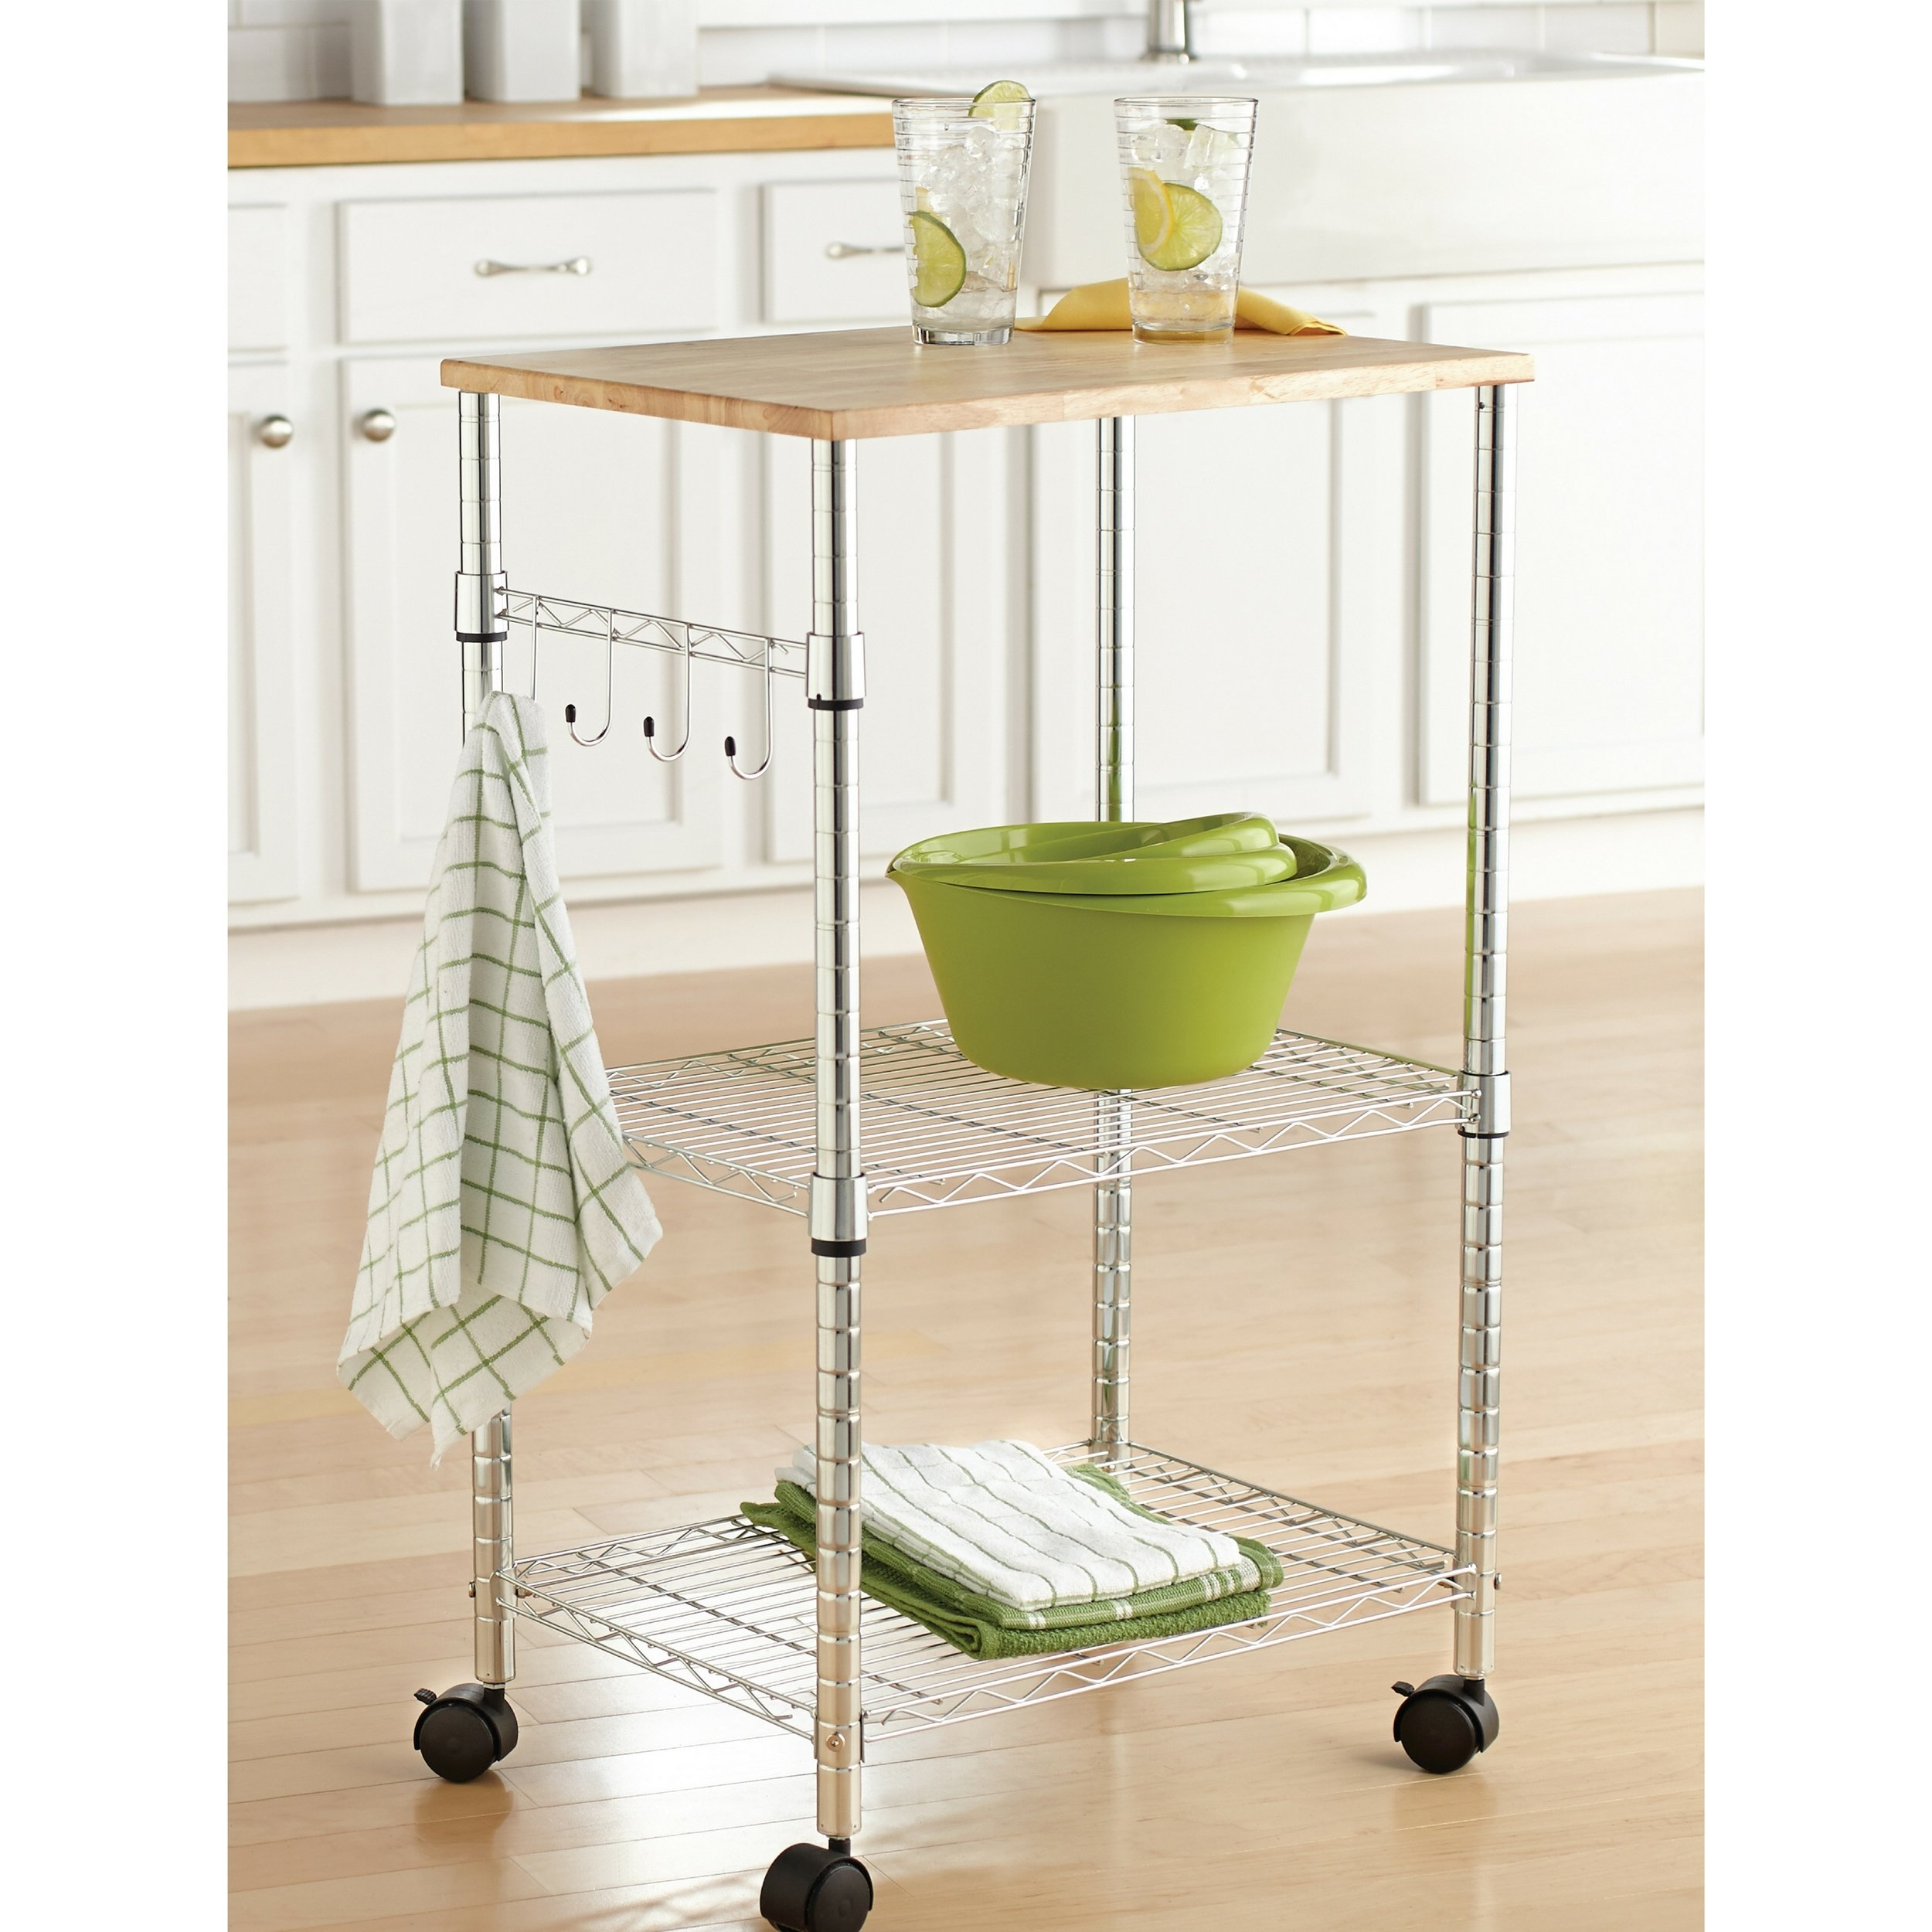 Mainstays Cart Sturdy Metal Sleek Design Wood Top Multi-Purpose Kitchen Cart, Chrome by Mainstay (Image #1)